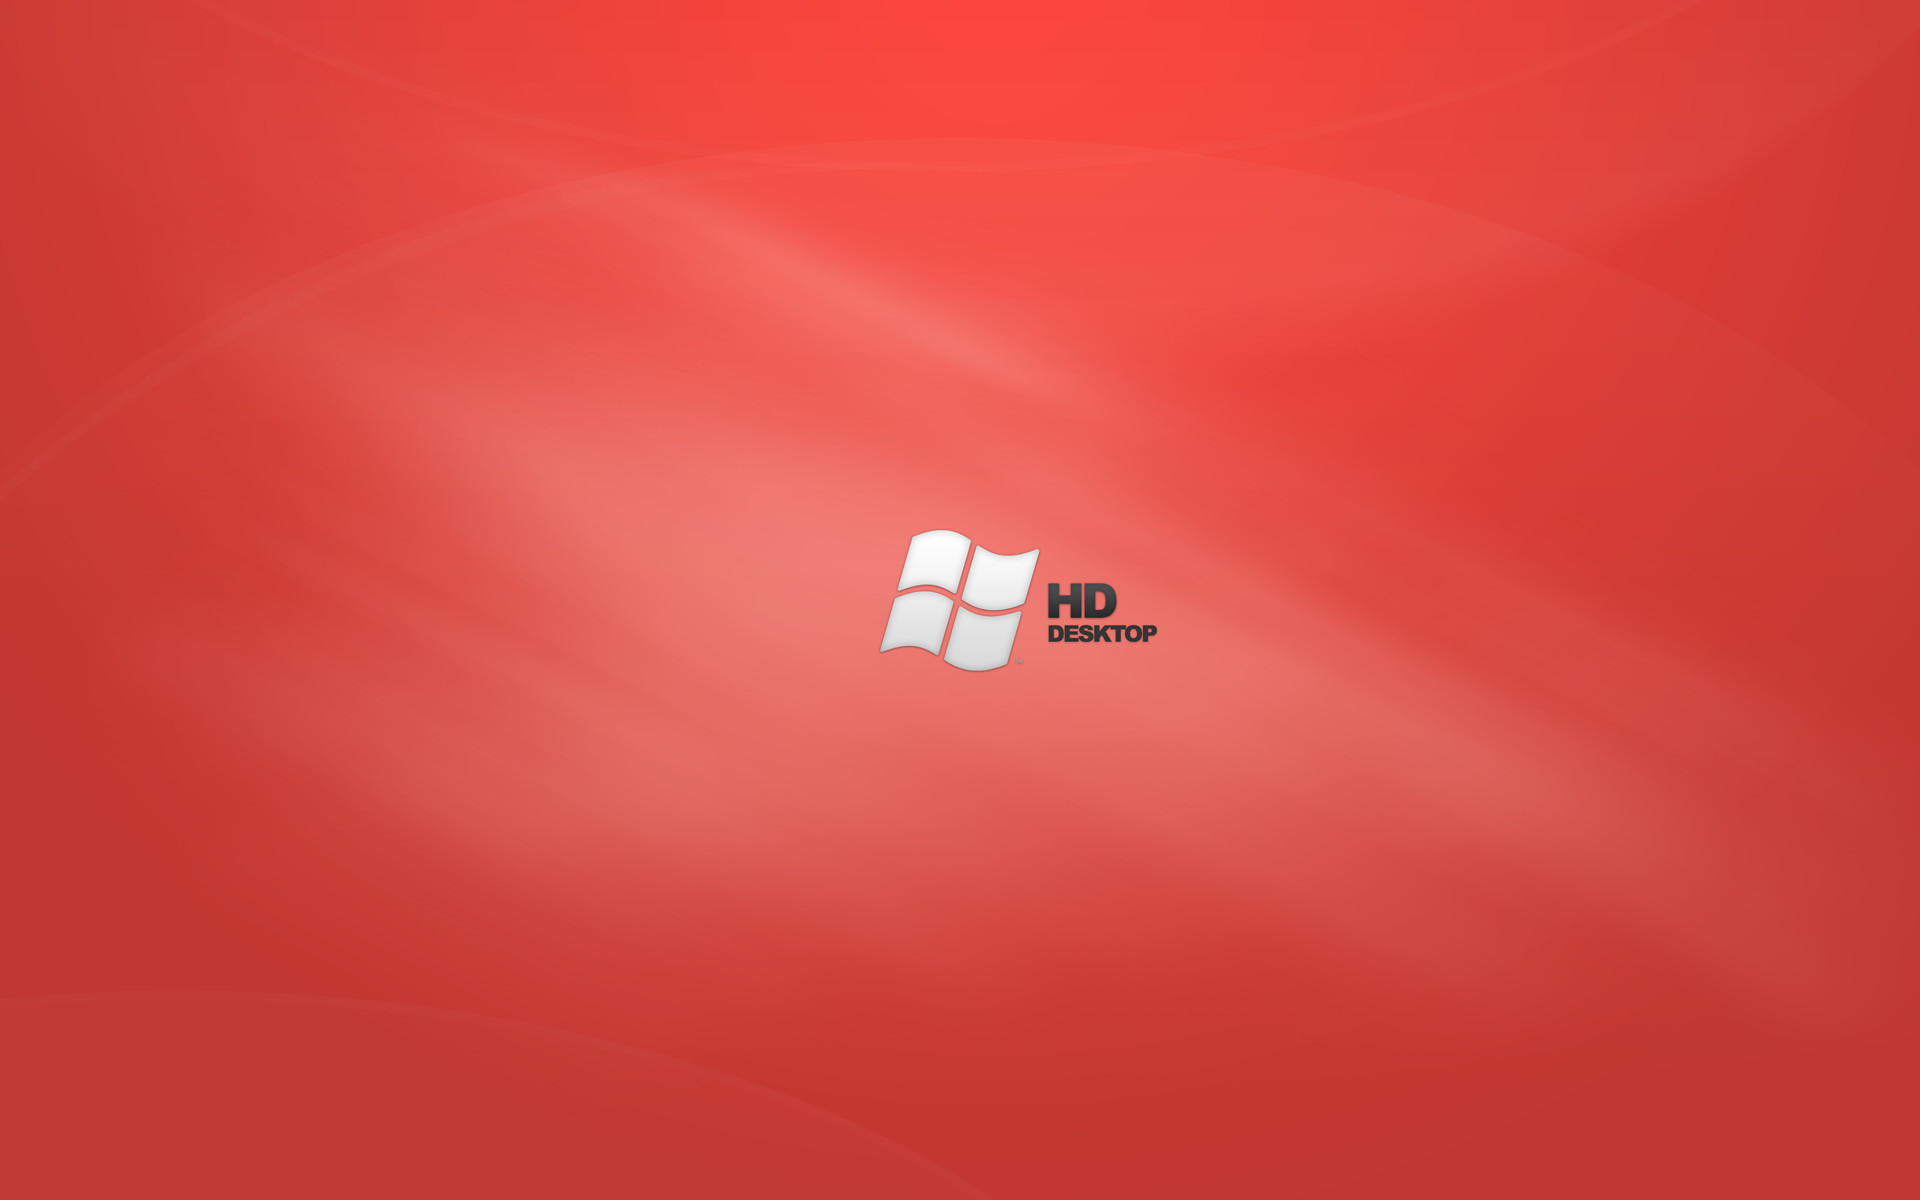 1920x1200 Windows Wallpaper Program - WallpaperSafari